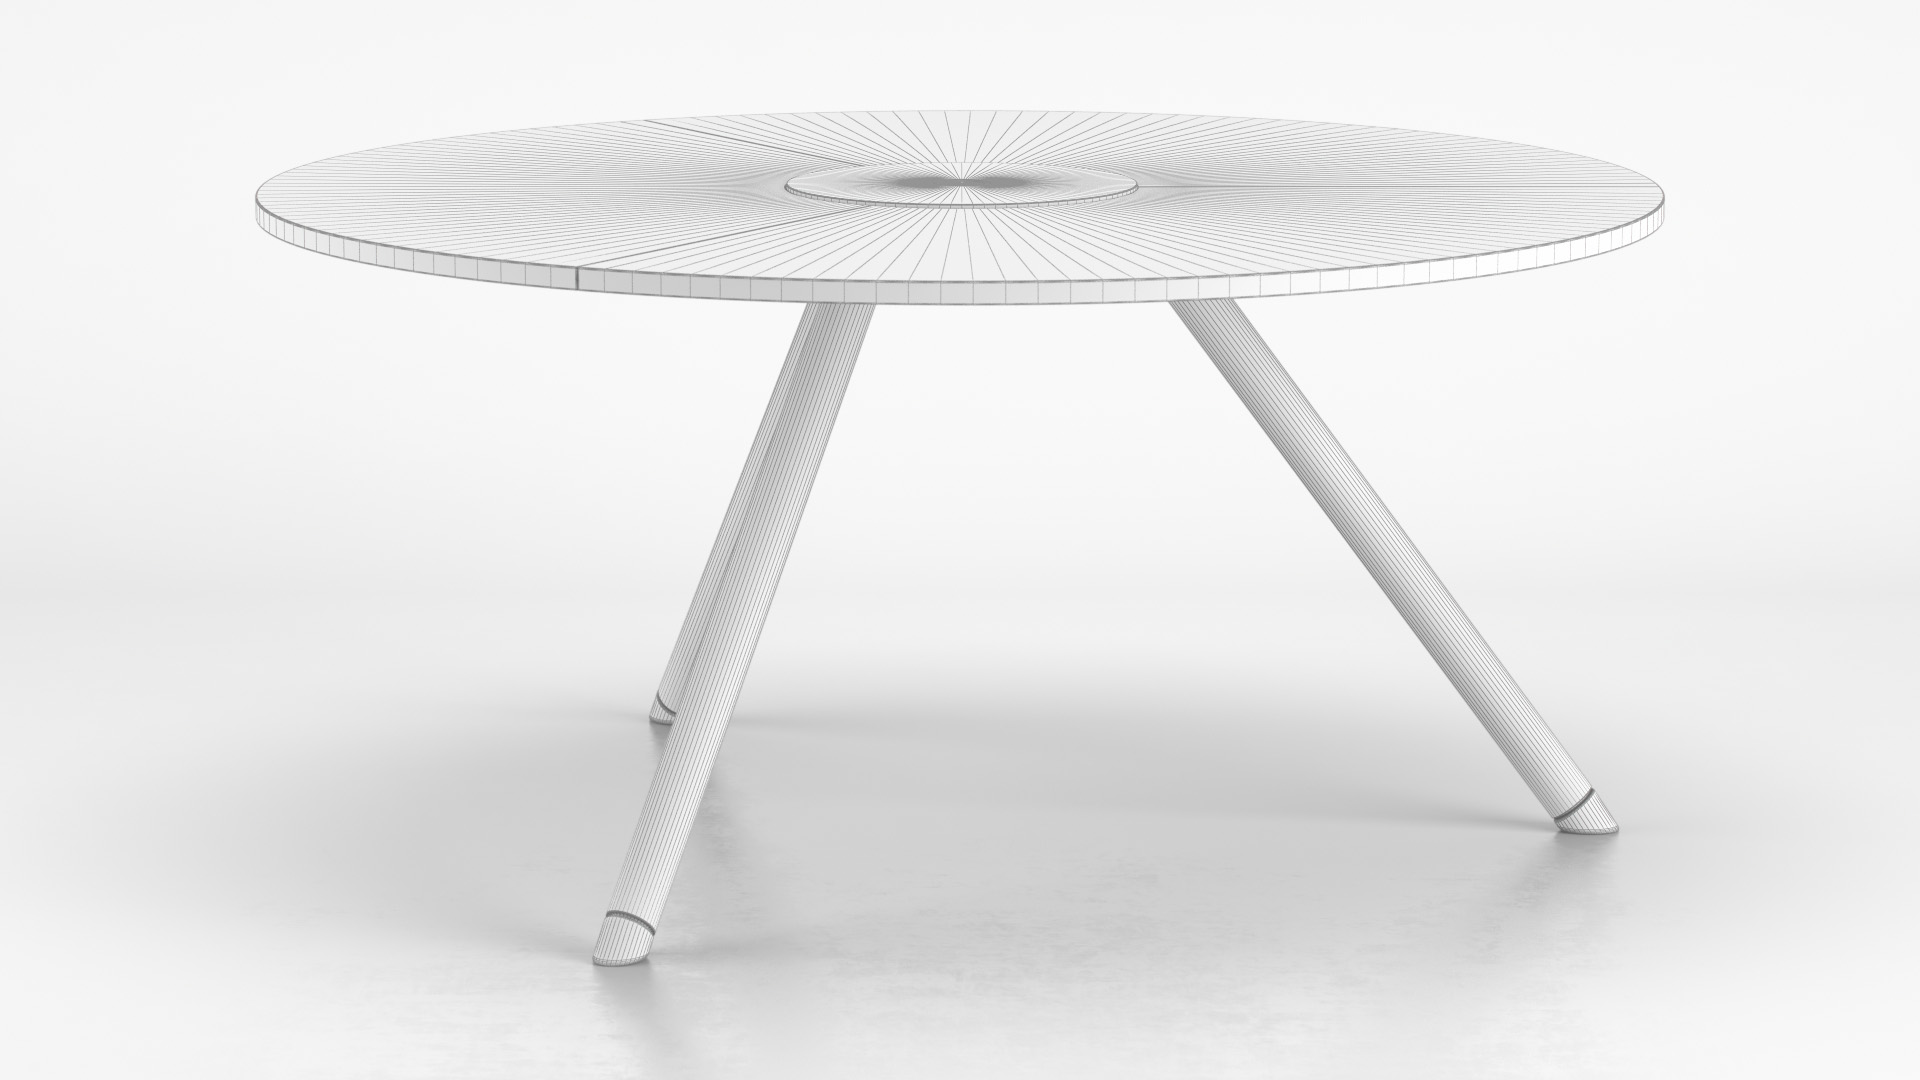 Zenith_Table_WhiteSet_01_wire_0002